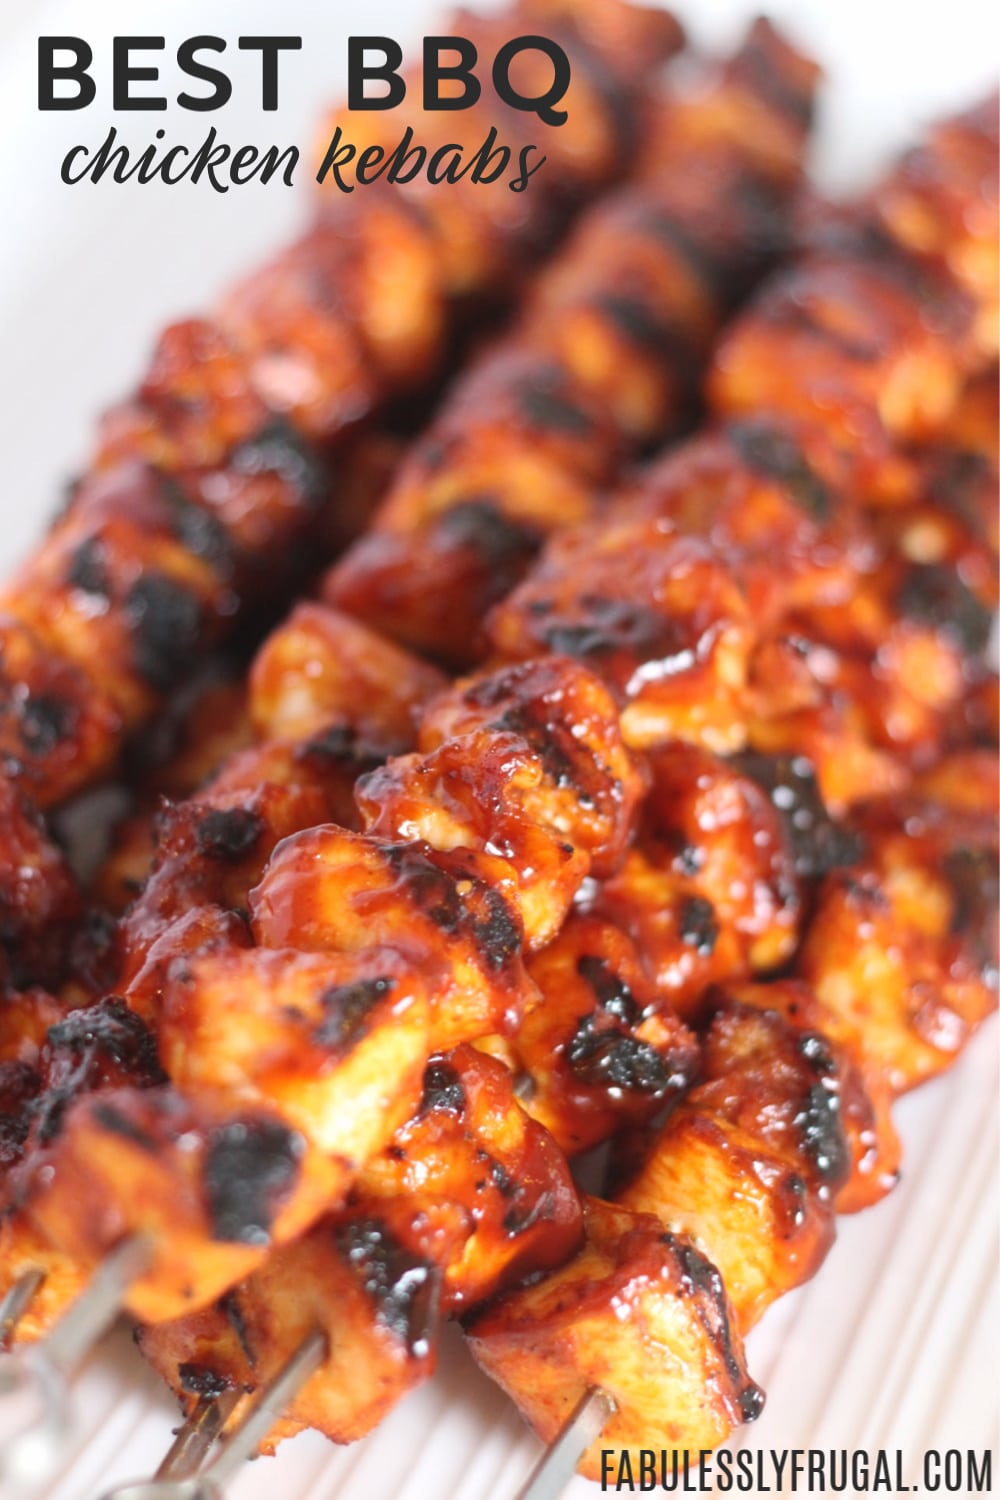 The Best Bbq Chicken Kebabs Recipe Fabulessly Frugal